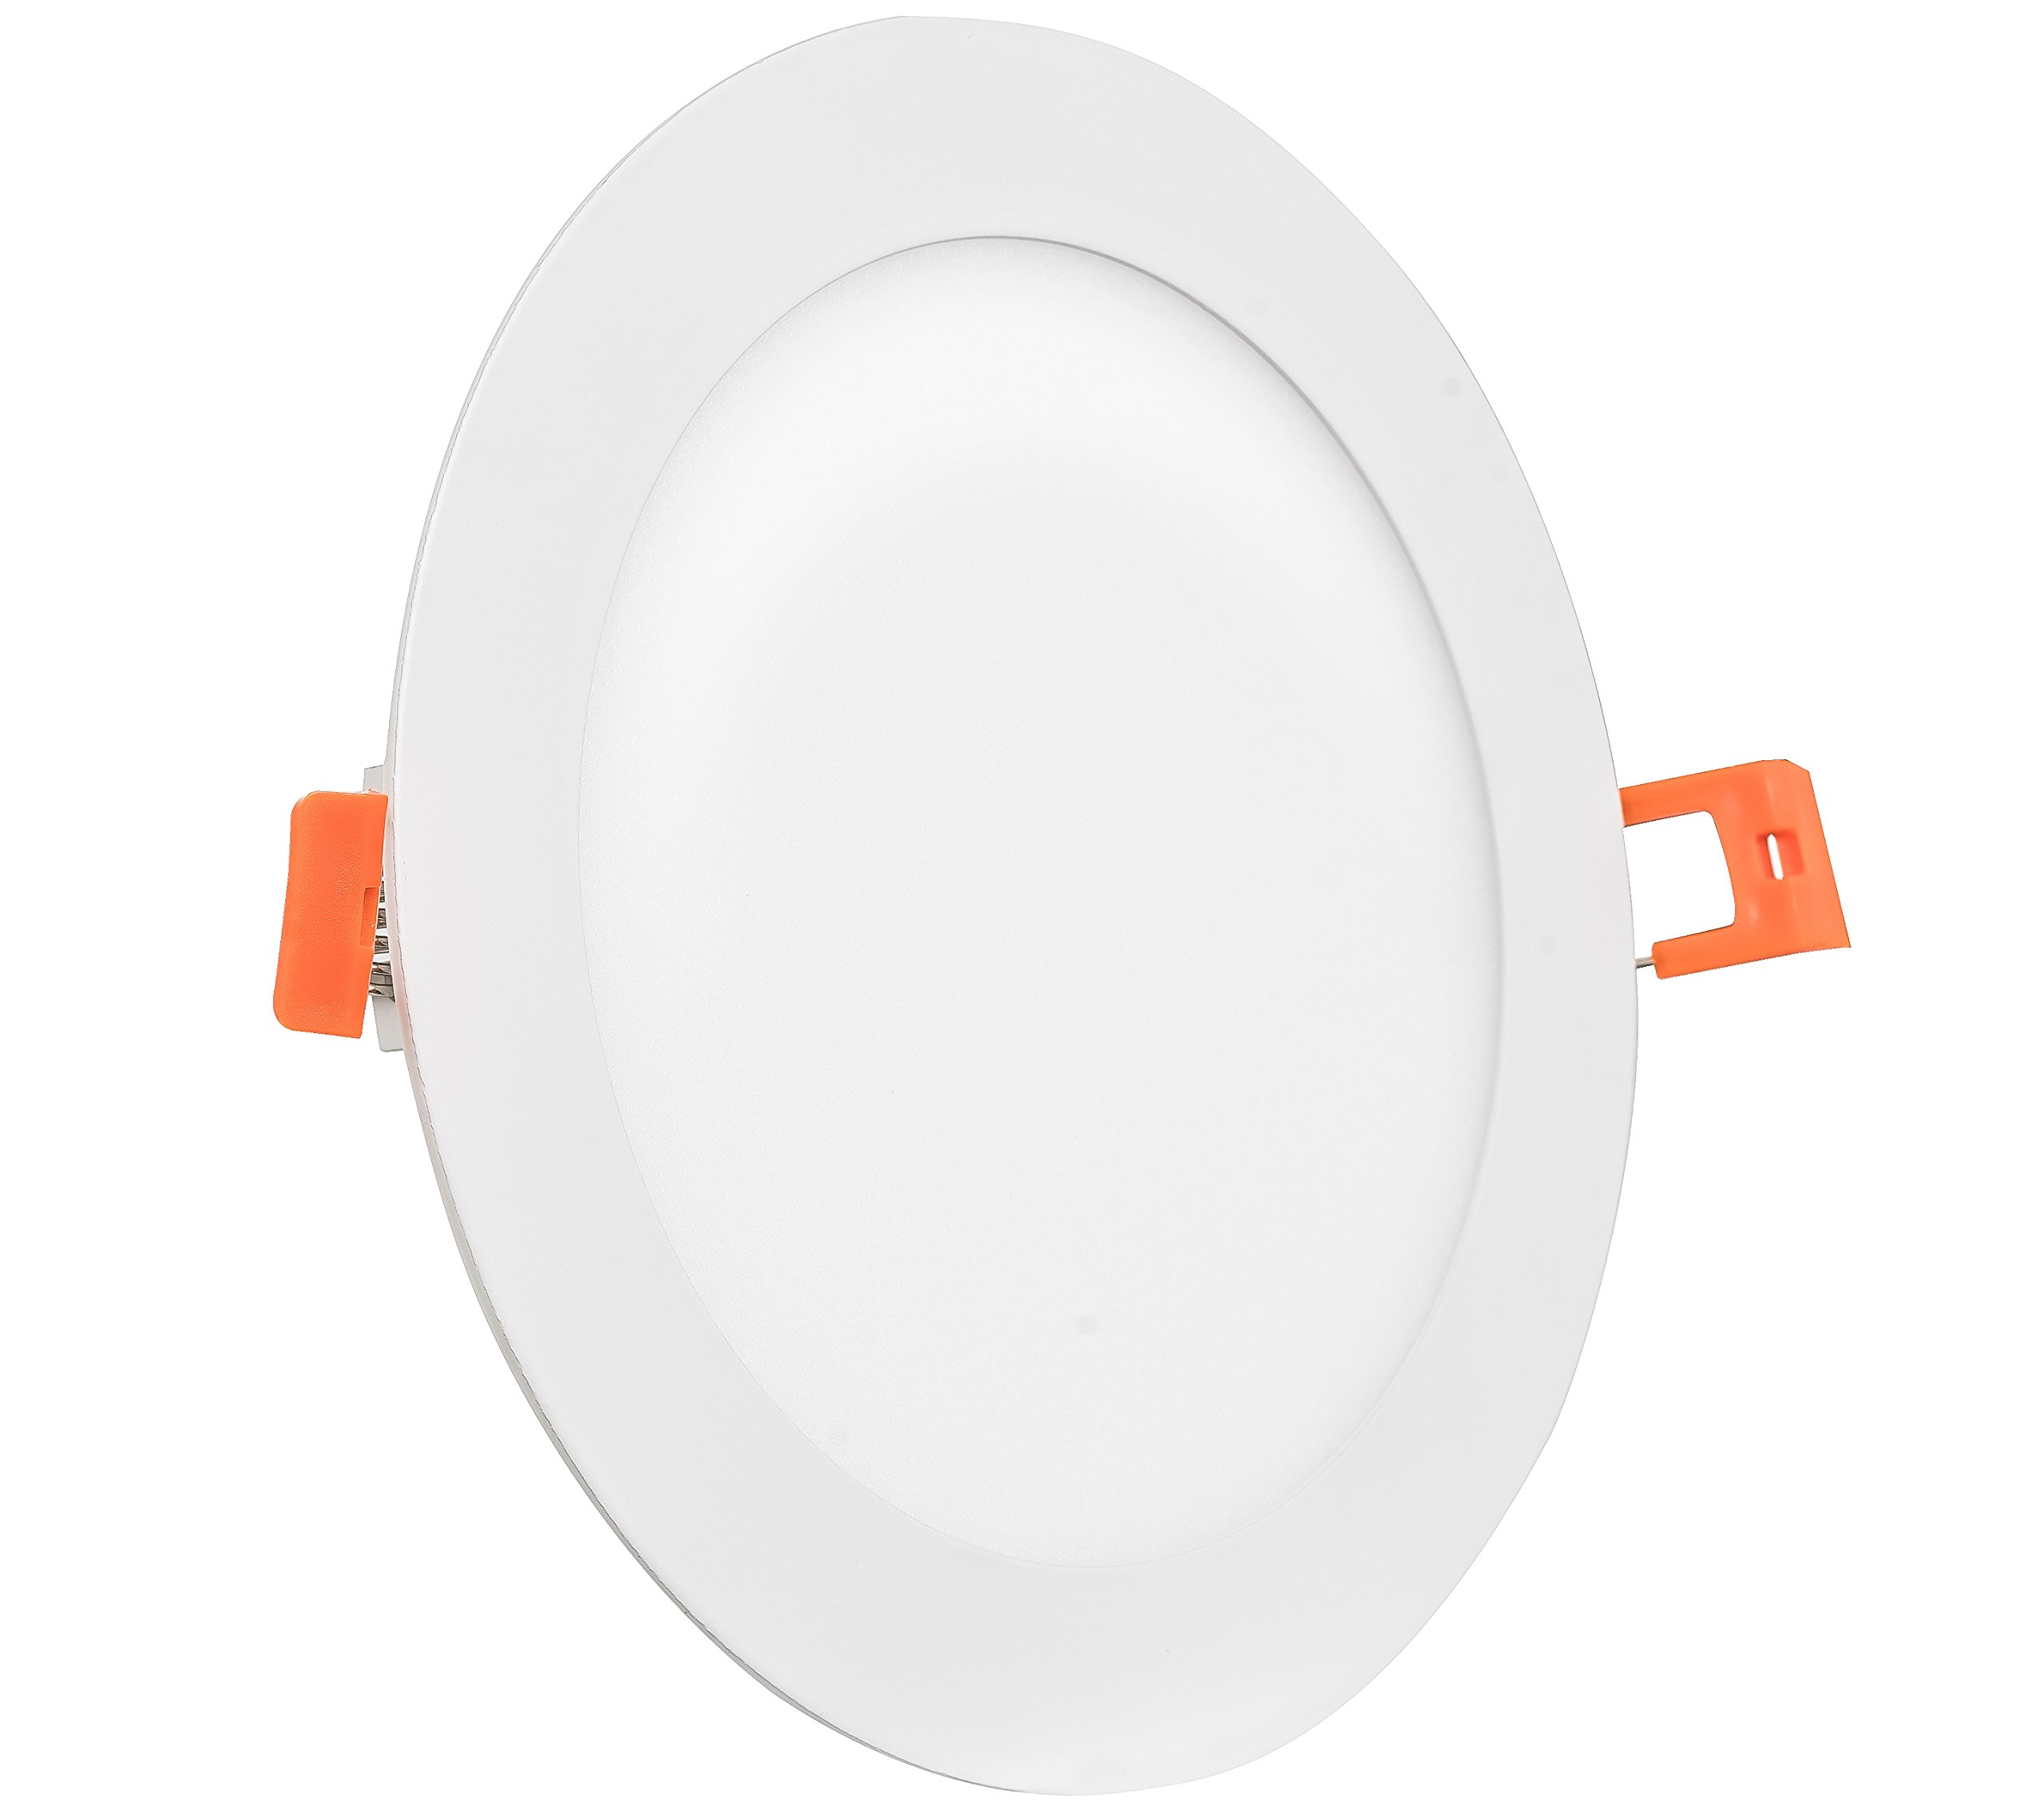 Westgate Lighting 15W 6 Inch Ultra Thin Slim LED Recessed Light - Dimmable Retrofit Downlight Smooth Trim - Junction Box Included - No Housing Required - Ceiling Lights (1 Pack 2700K Warm White)